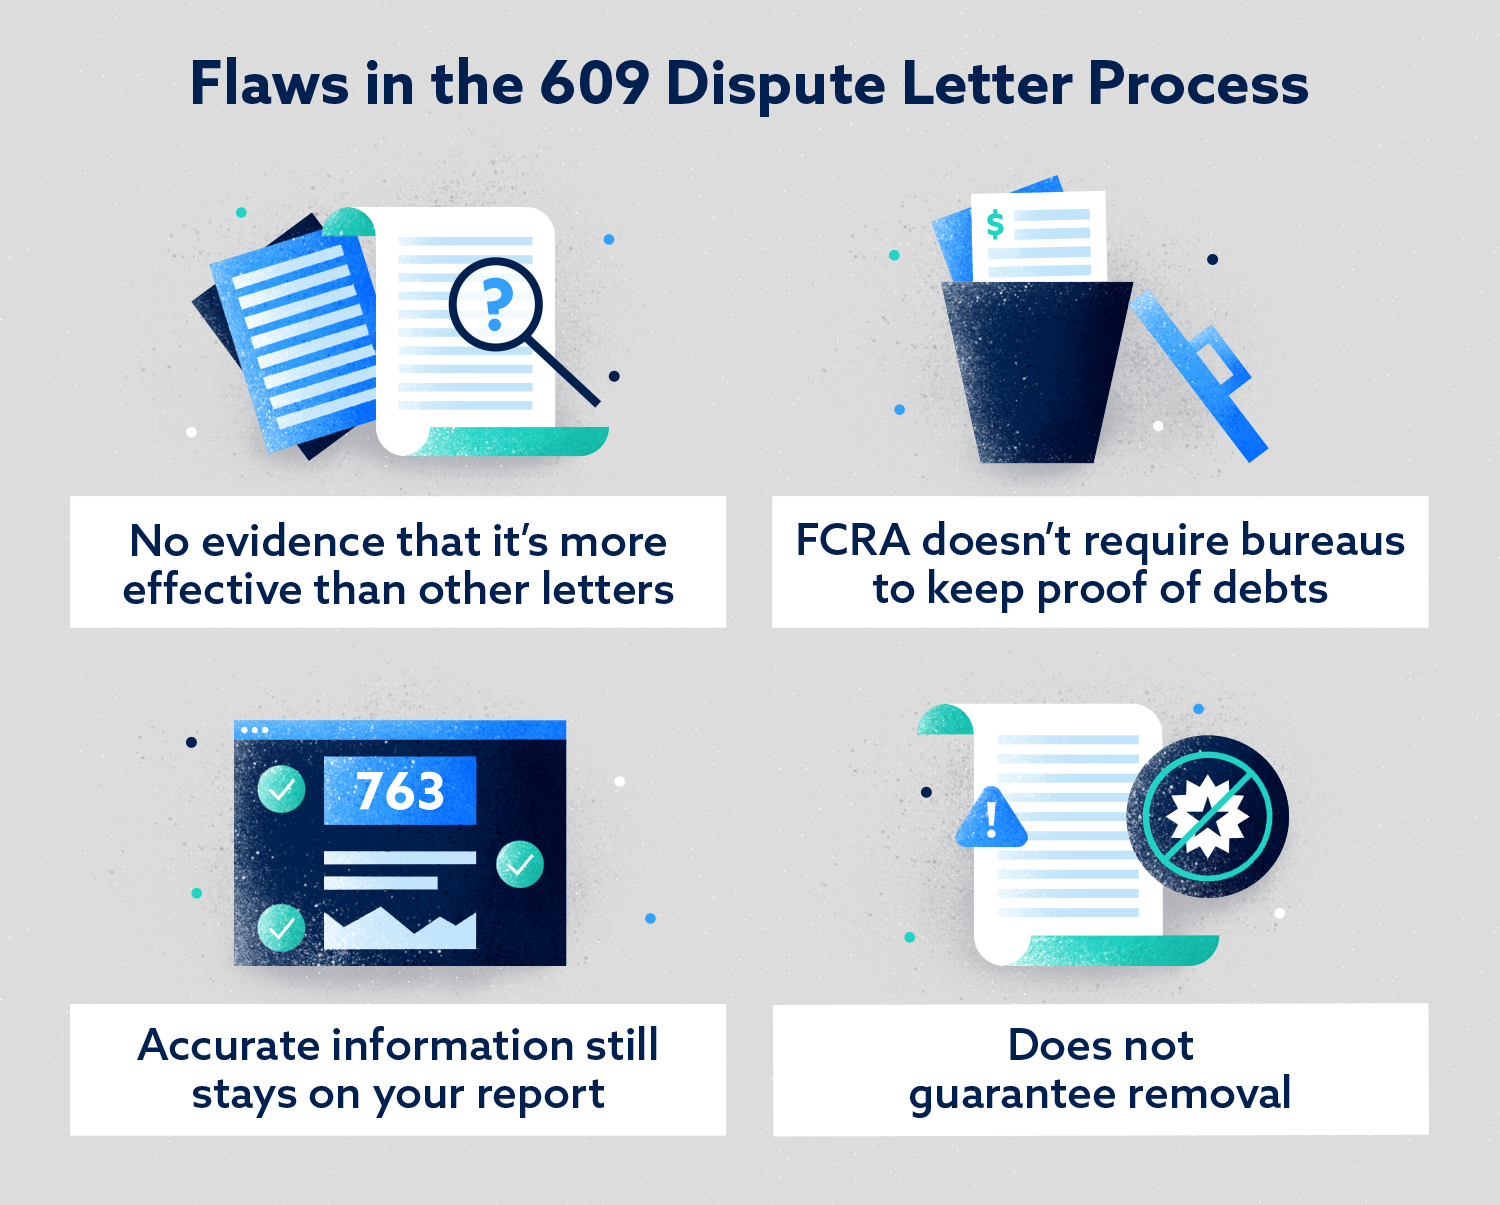 Flaws in the 609 Dispute Letter Process Image